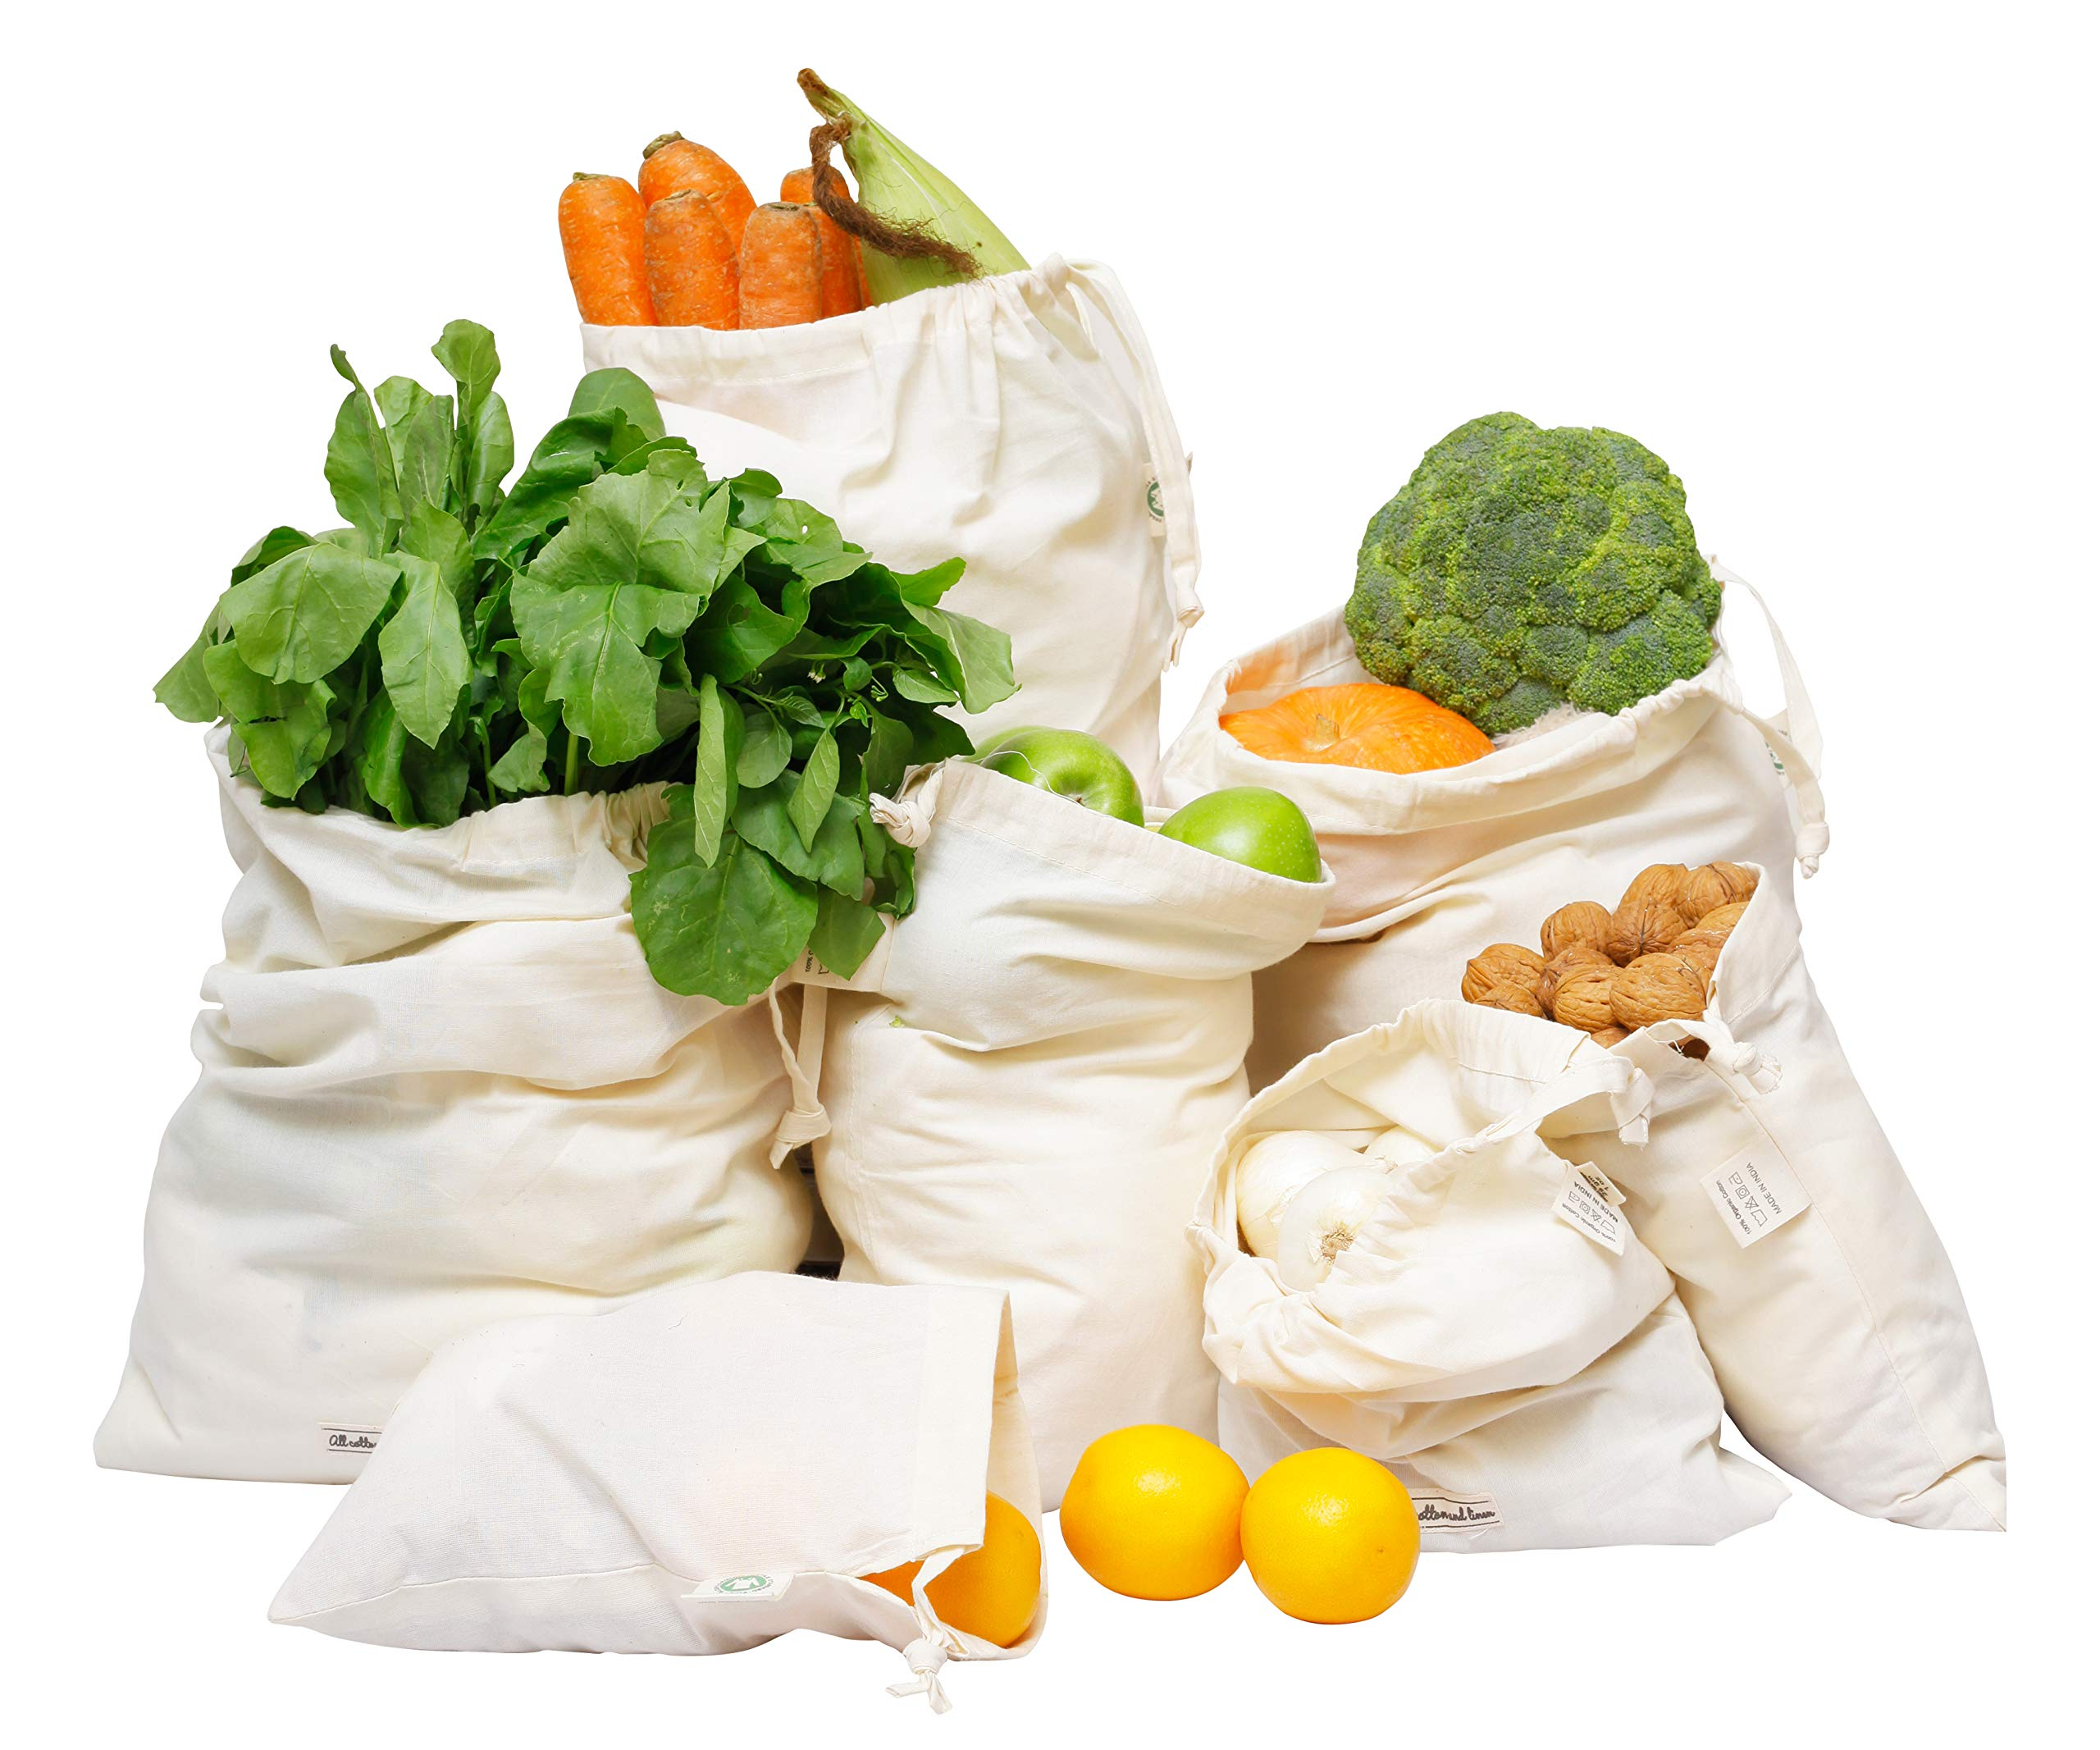 Muslin Produce Cotton Vegetable Bags - Cotton Grocery Shopping Bags (Bulk, Heavy Duty, and Drawstring Bags) Organic Storage Bag - Reusable Veggie Bags set of 7 (1 of XXL, L, M, S, XS & 2 of XL)